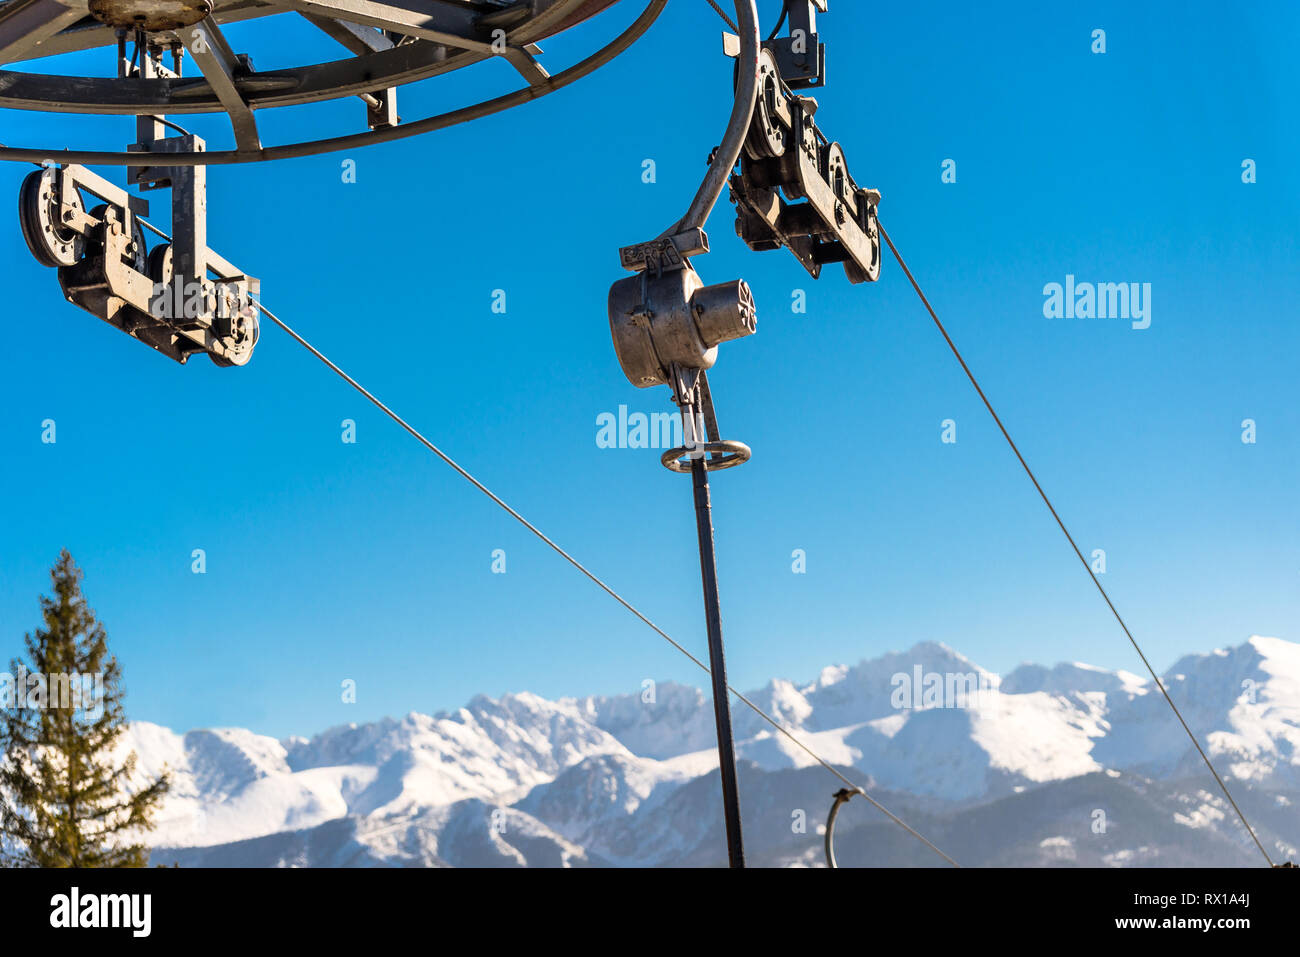 The mechanism of the ski lift, visible metal parts and ropes on which hang chairs in the background Tatry mountains. - Stock Image